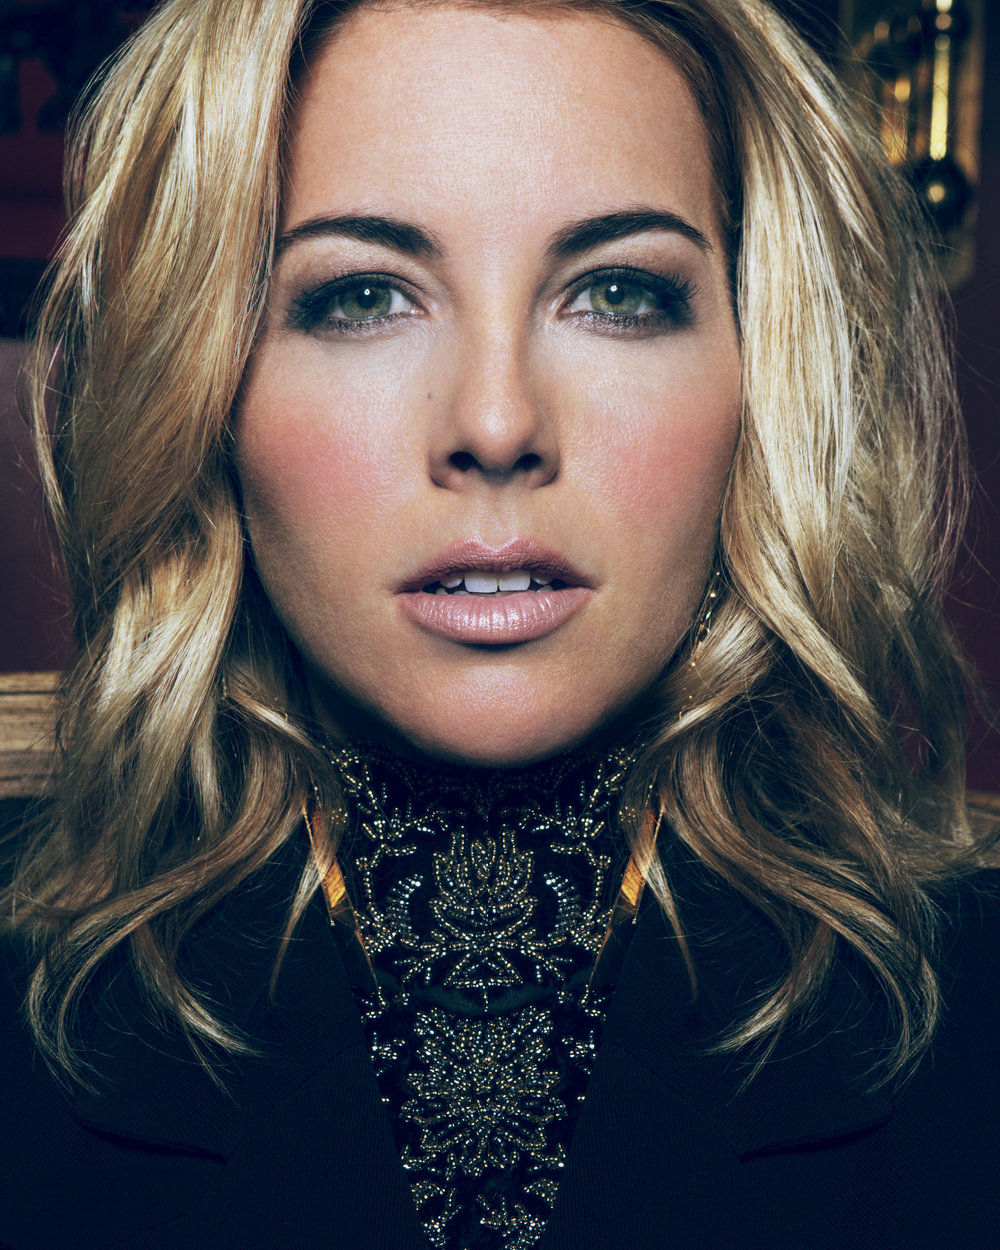 Morgan James album cover